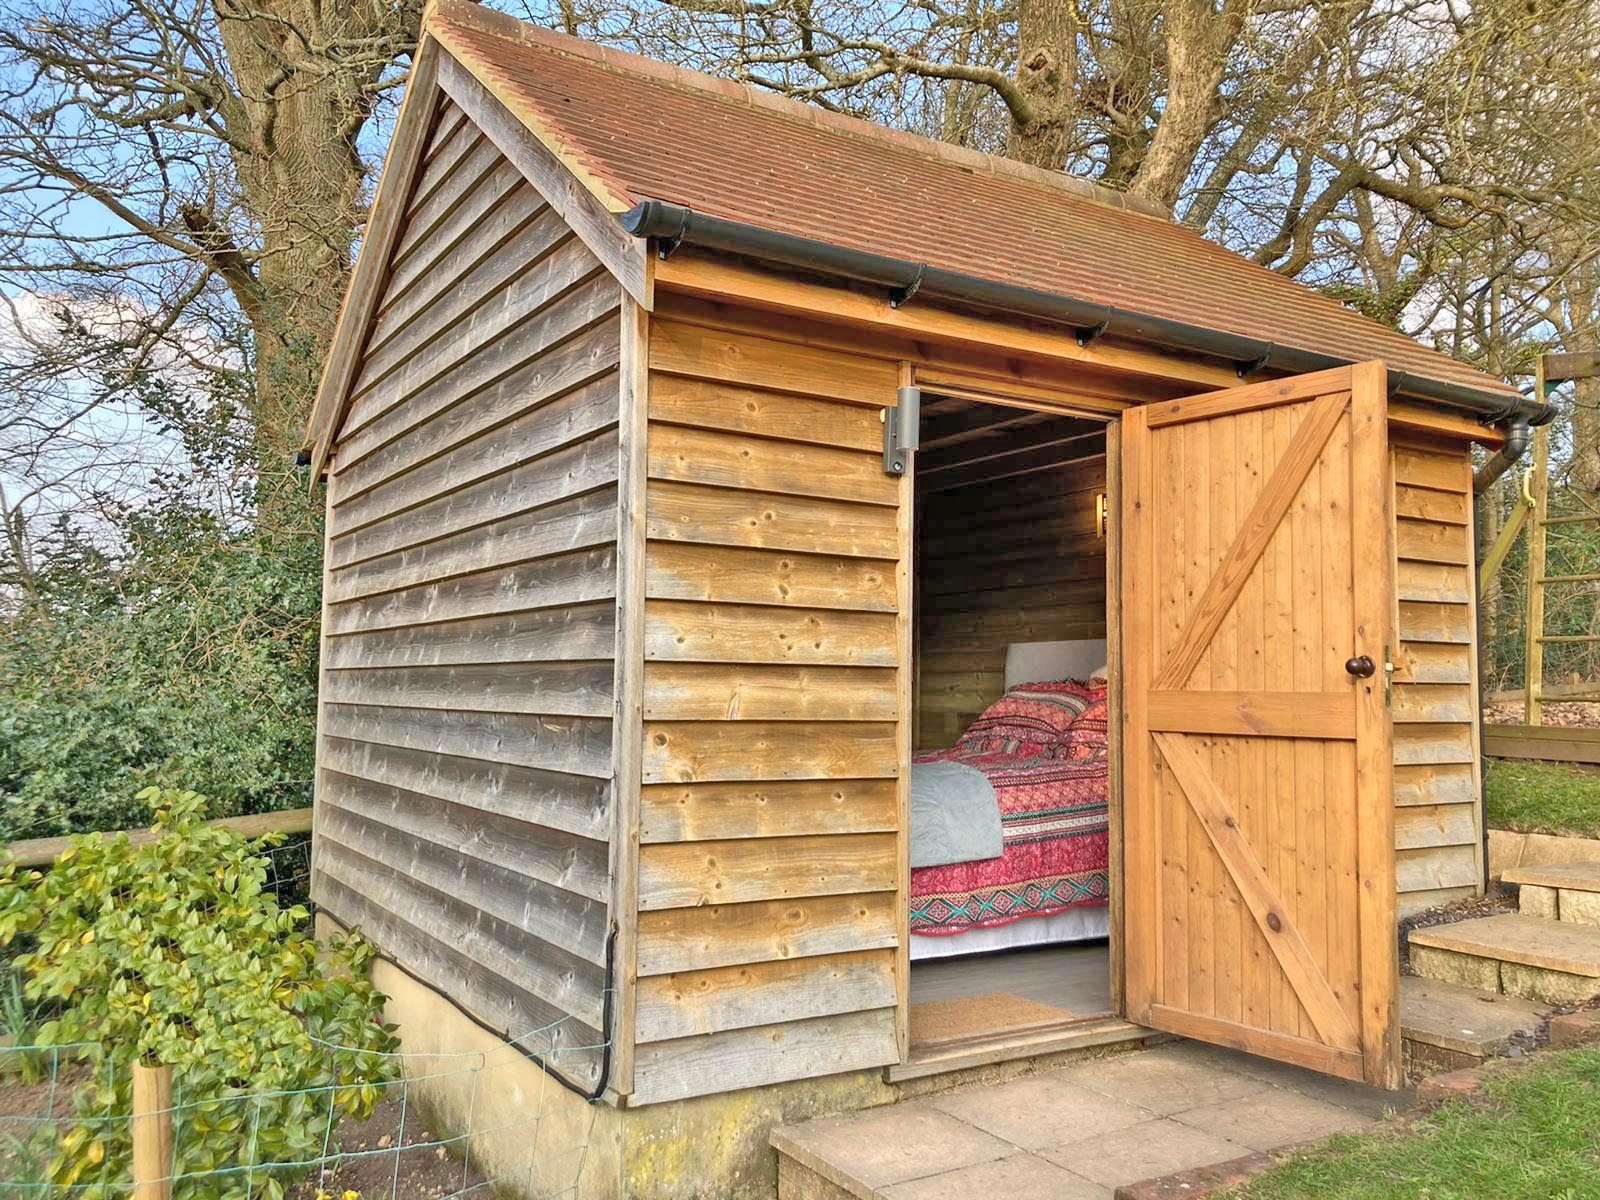 Mews Hill Cottage, Glamping Hut exterior